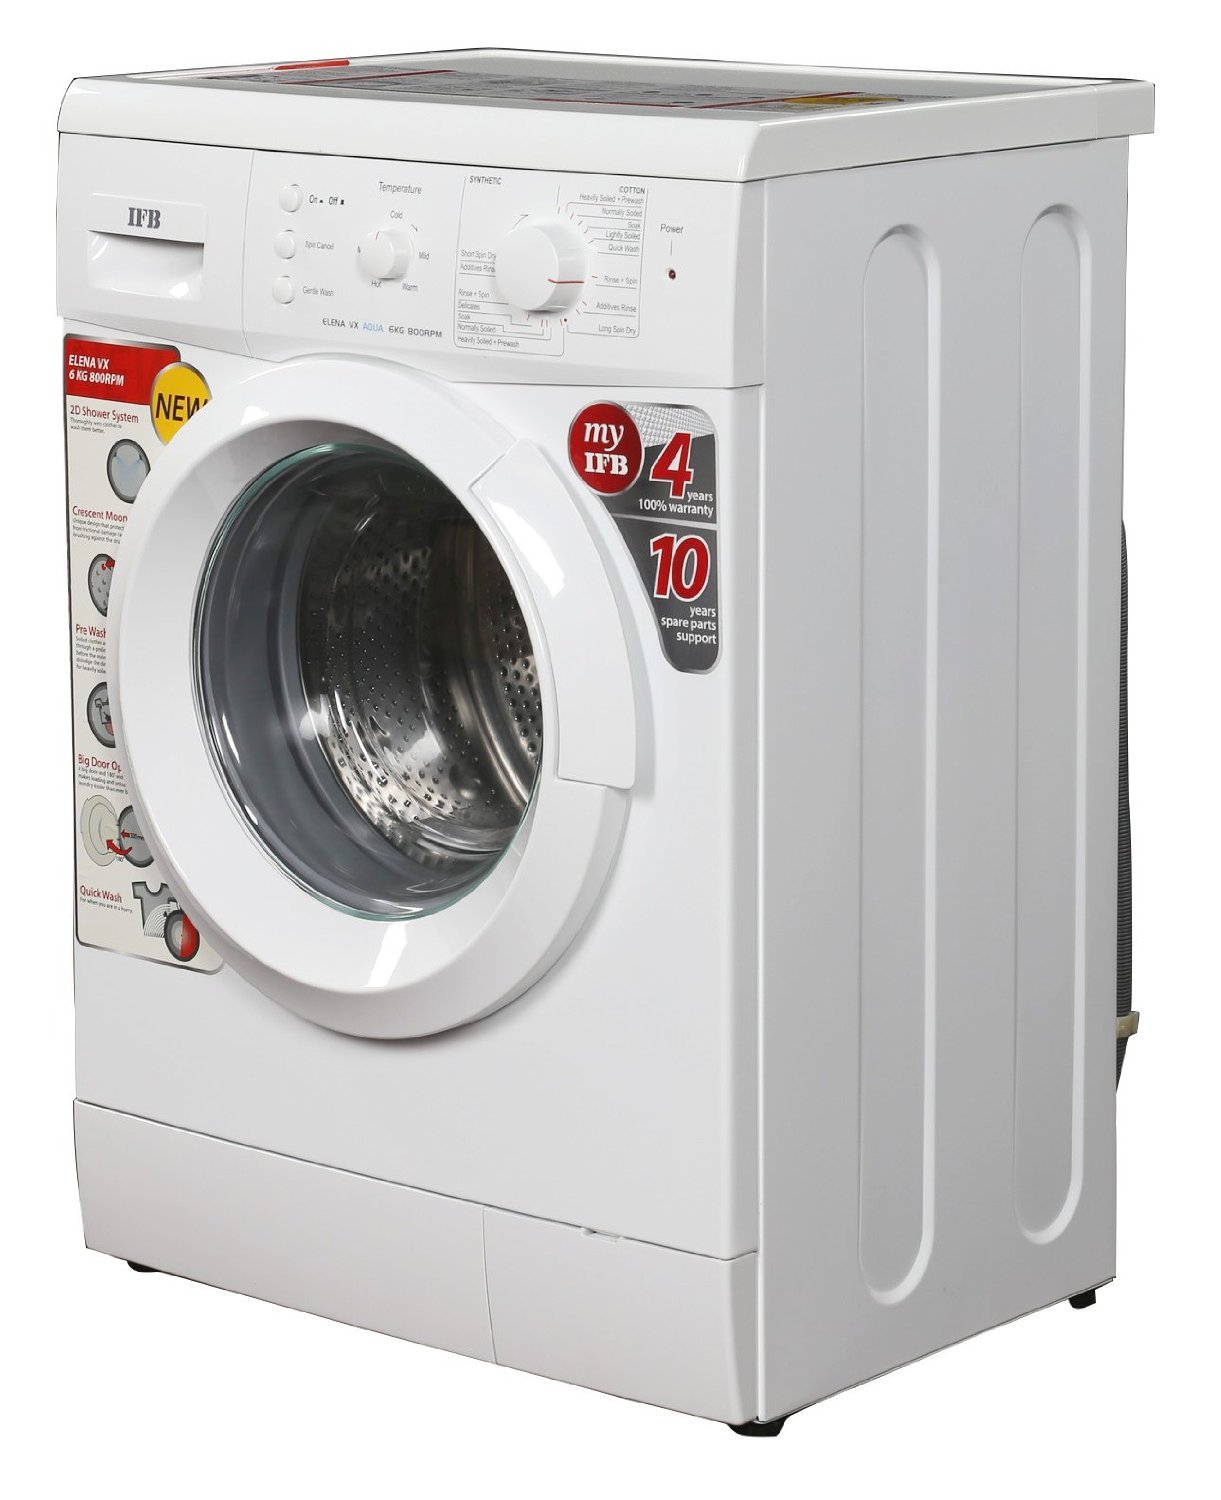 IFB Elena VX 800RPM Front-loading Washing Machine (6 Kg, White): Amazon.in:  Home & Kitchen